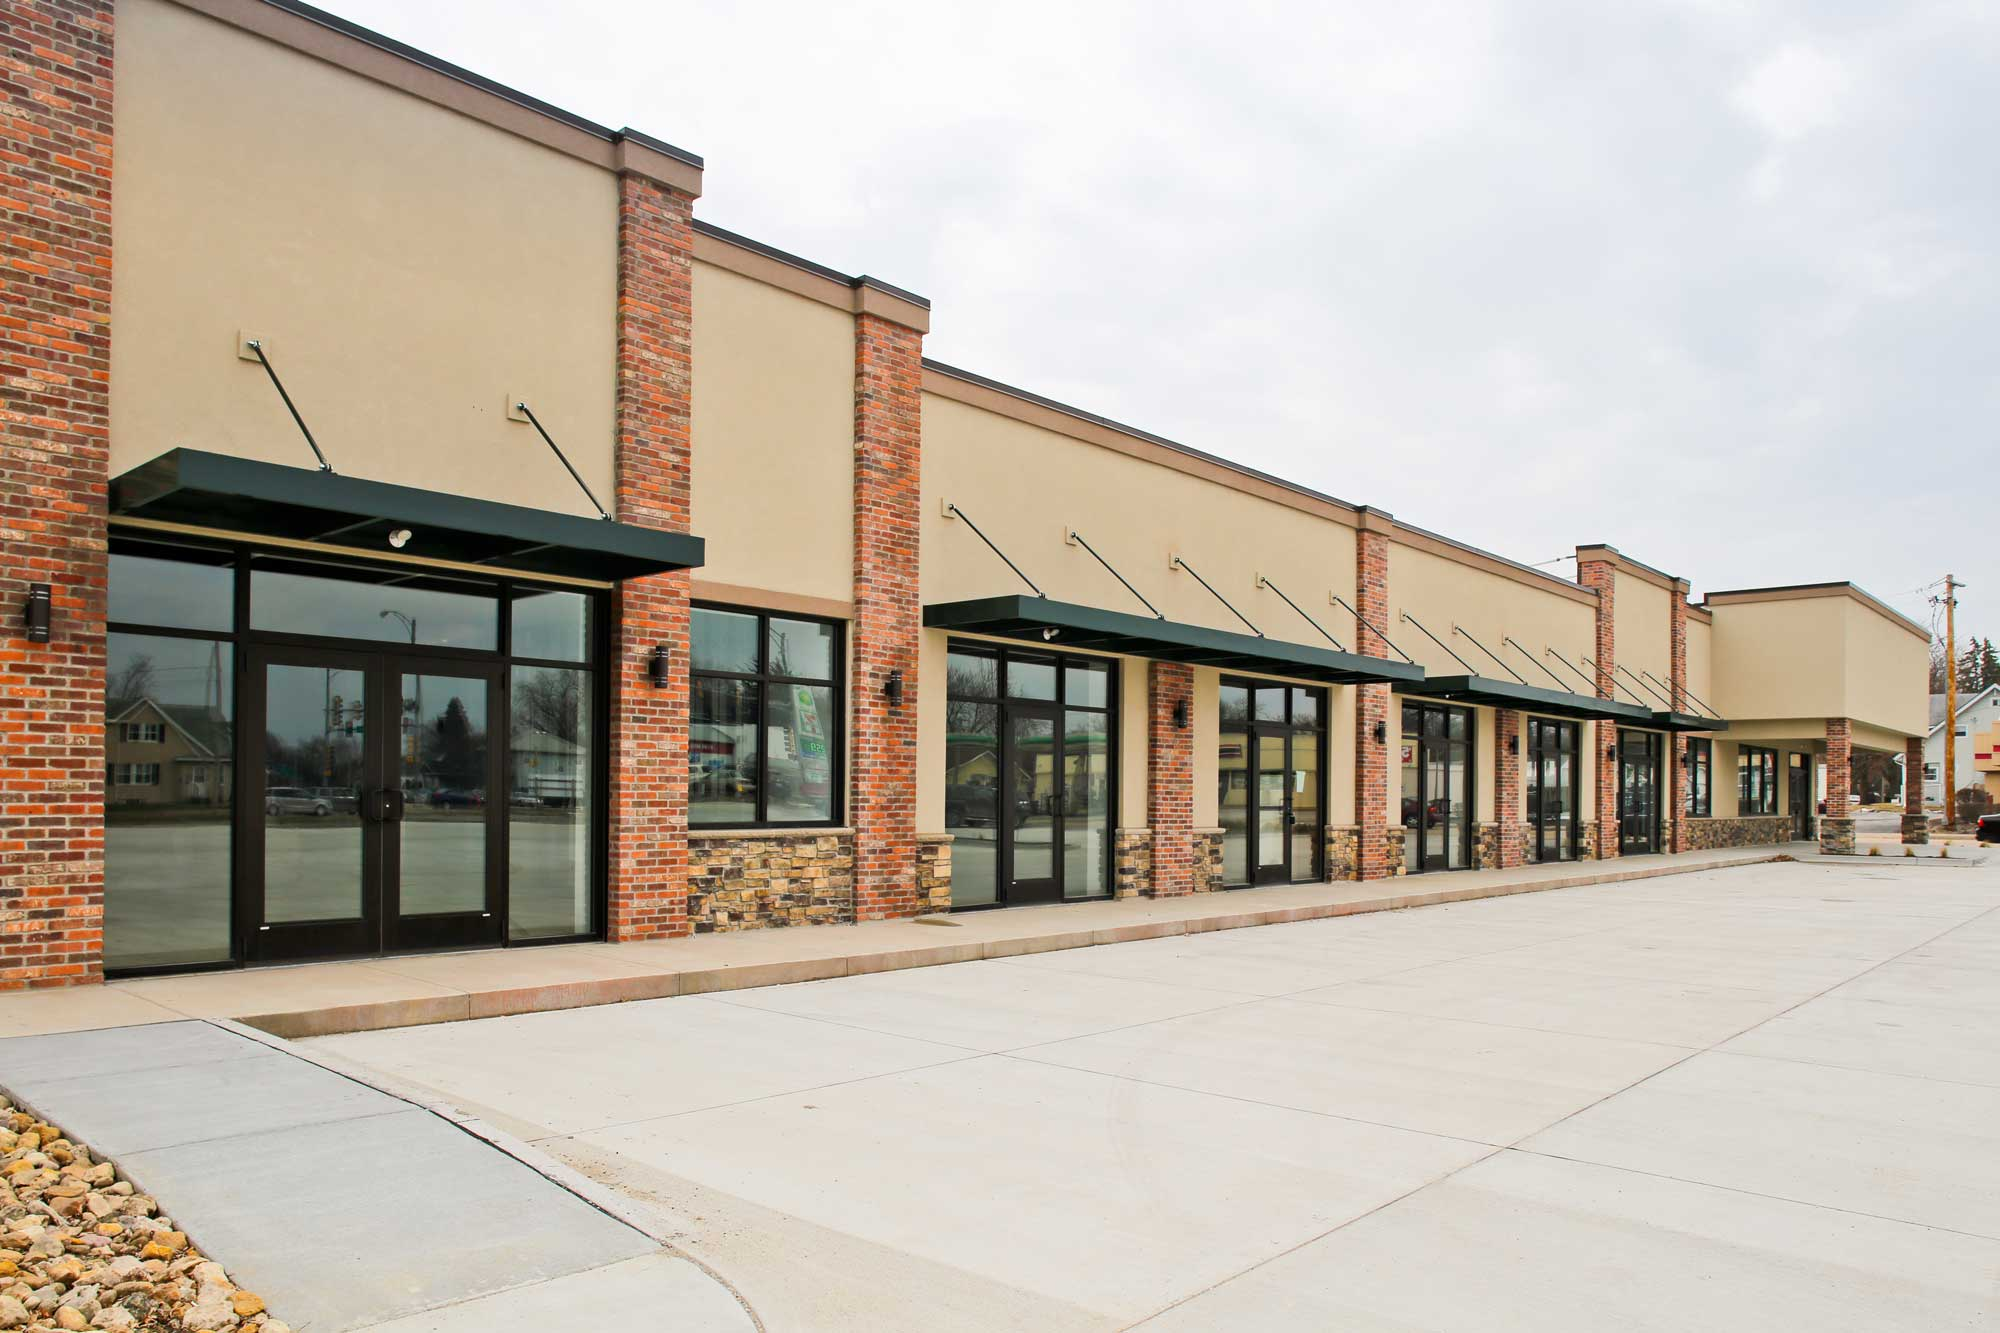 Feature of Commercial Plaza built by Daxon Construction